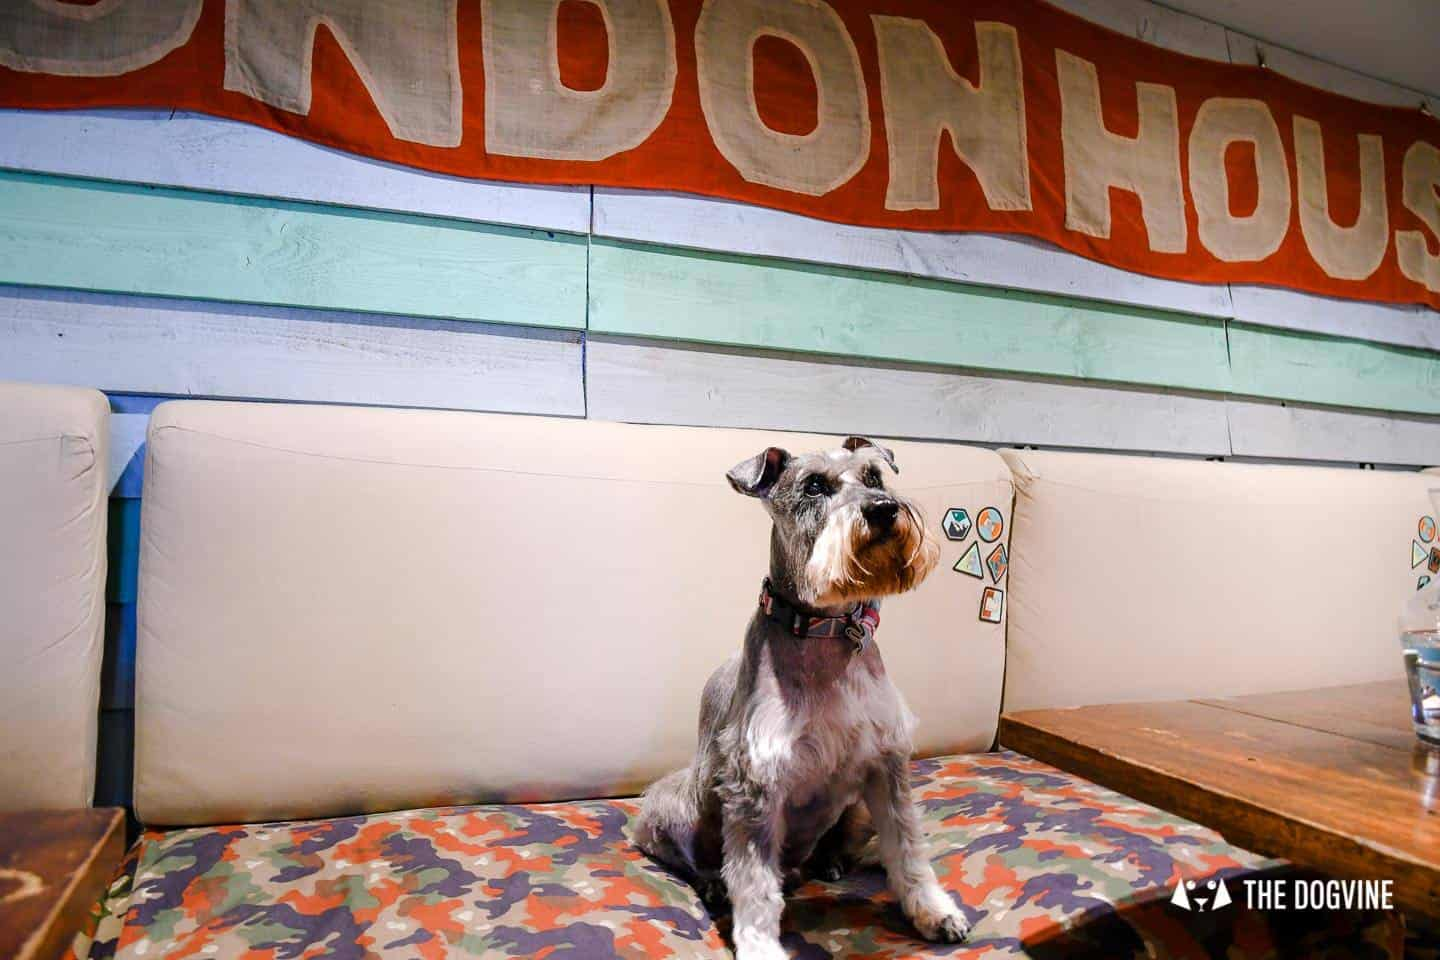 My Dog Friendly London By Pepper Chung the Schnauzer - Dog Friendly Notting Hill 1